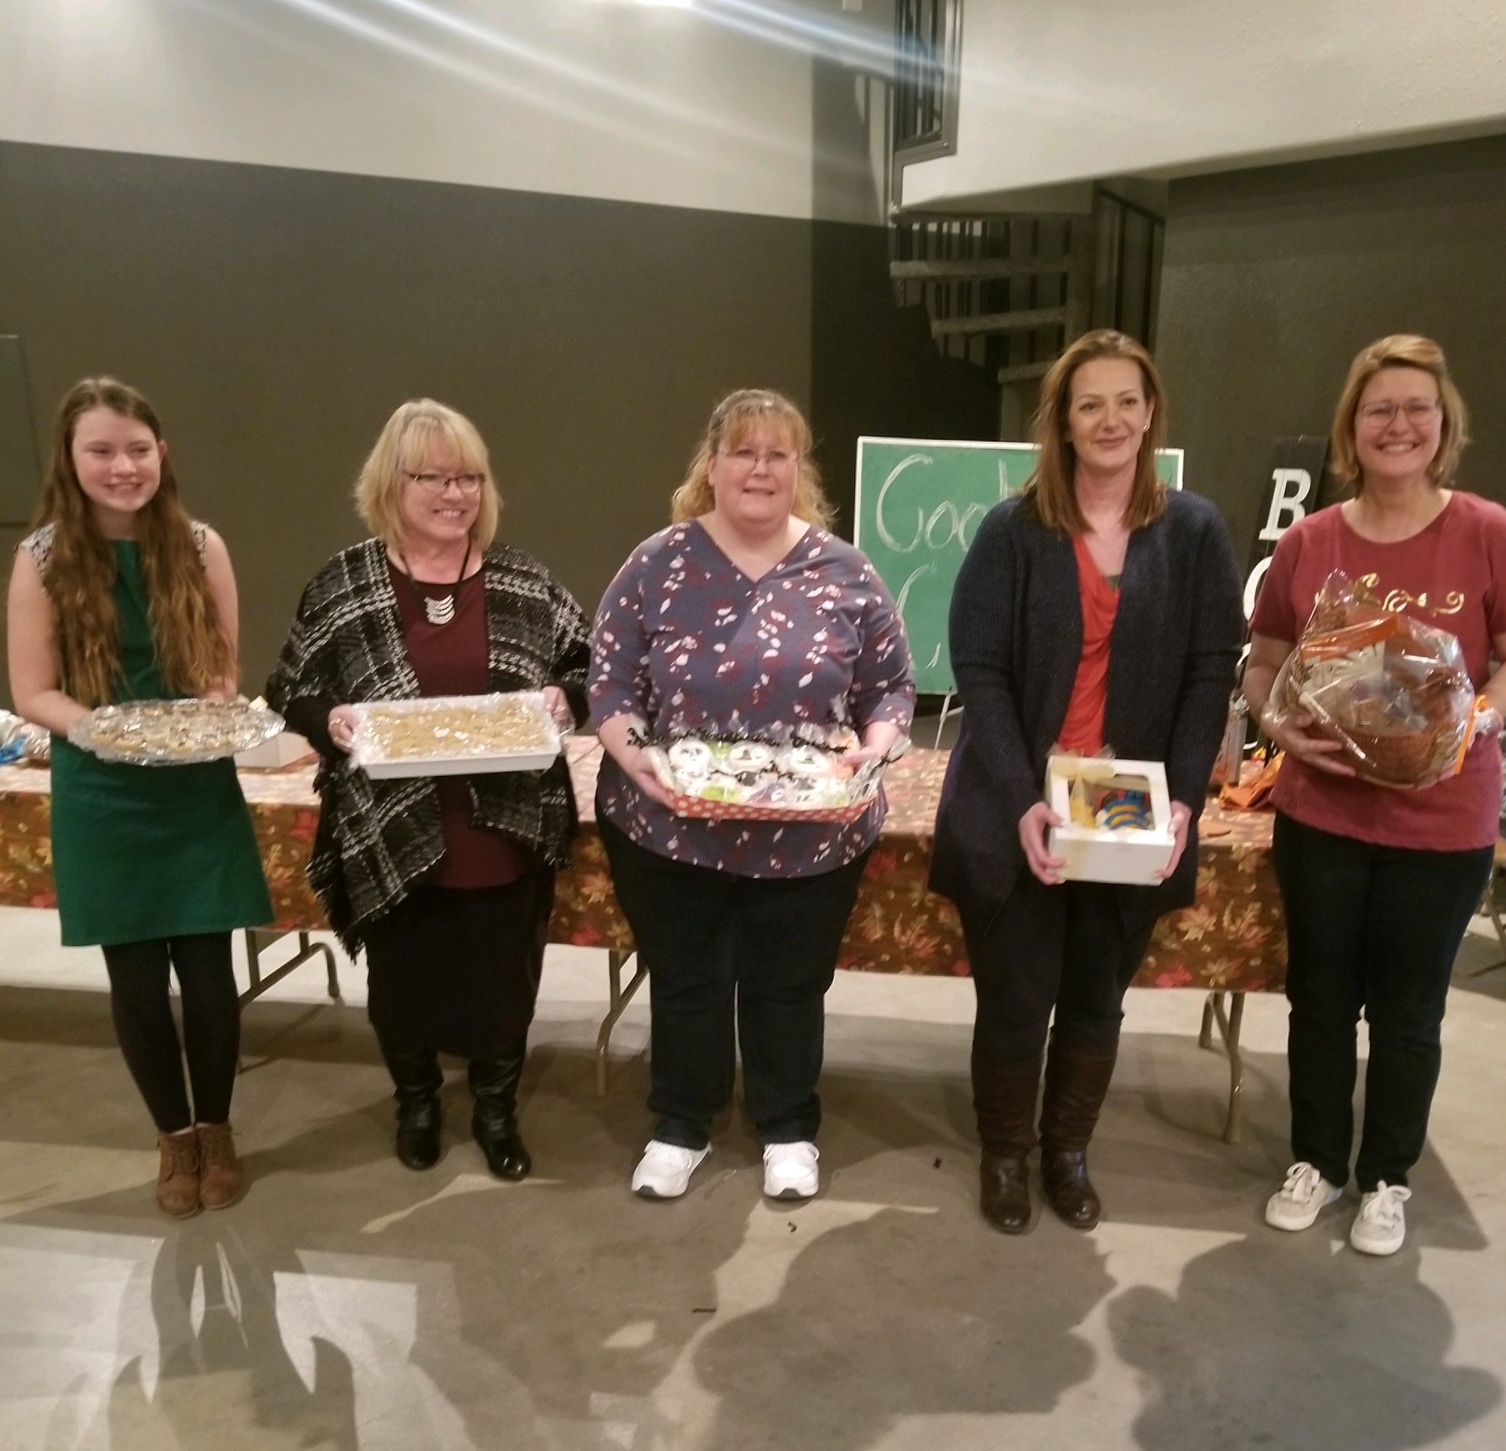 Friends Church of Liberal Raises Funds for Stepping Stone Shelter